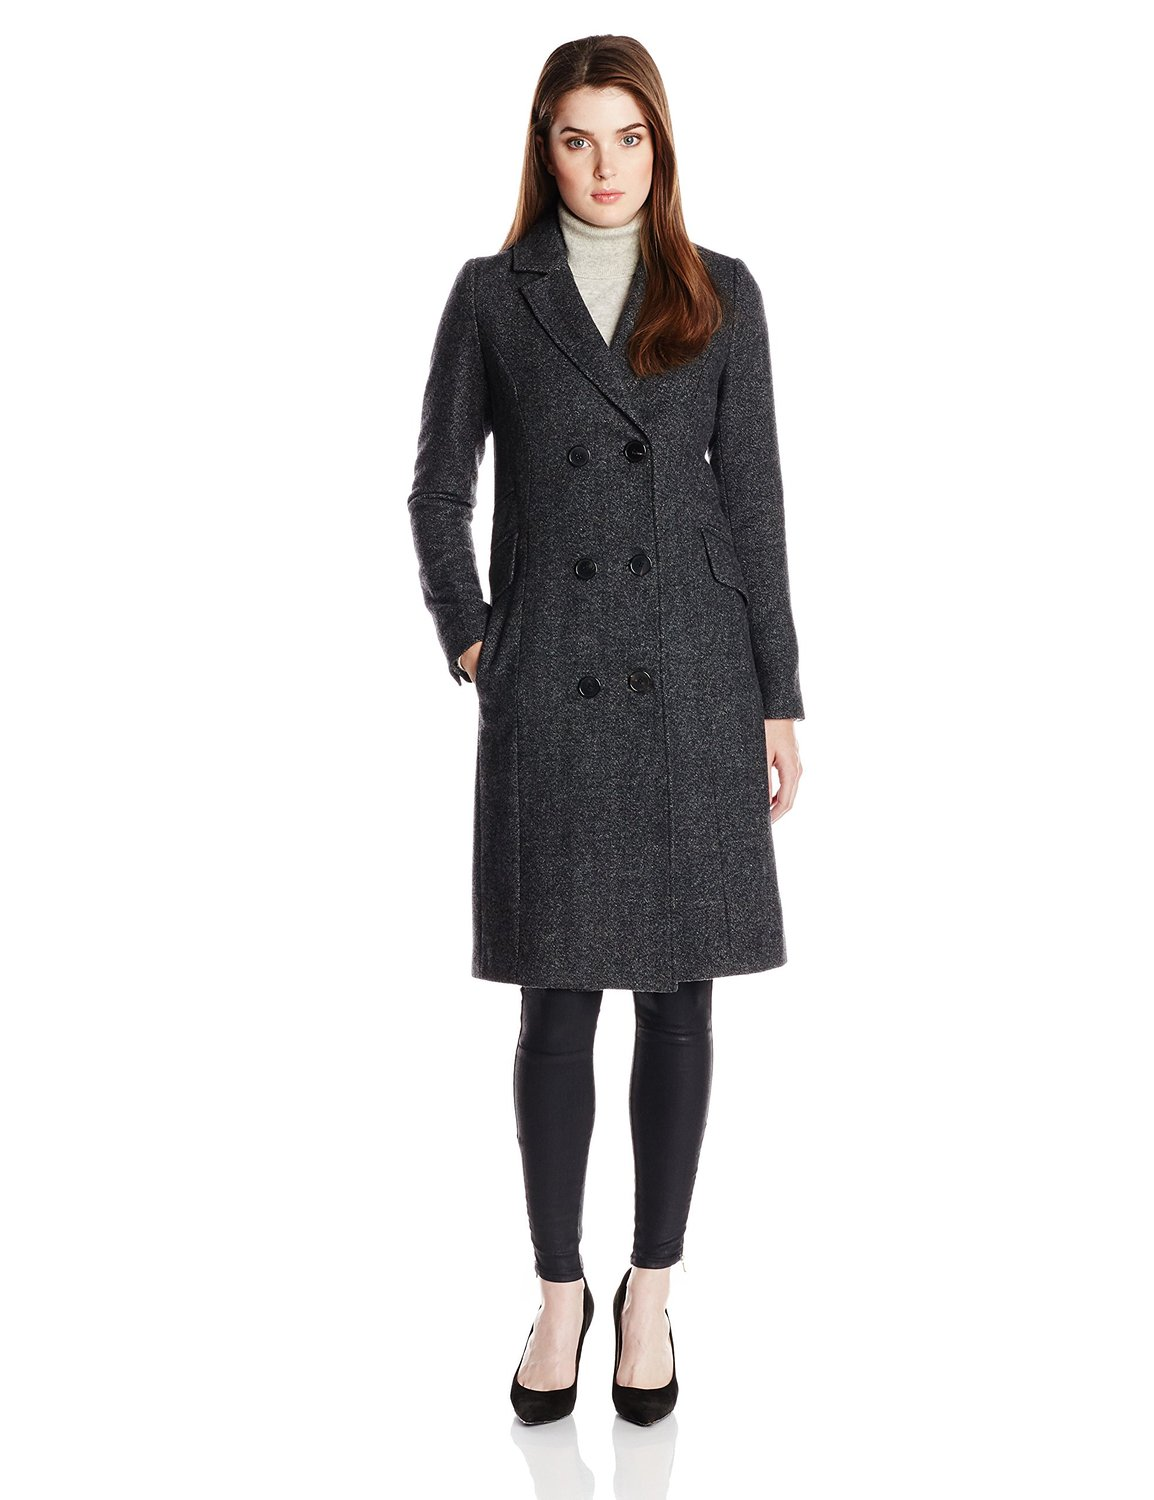 Find chesterfield coat at ShopStyle. Shop the latest collection of chesterfield coat from the most popular stores - all in one place.